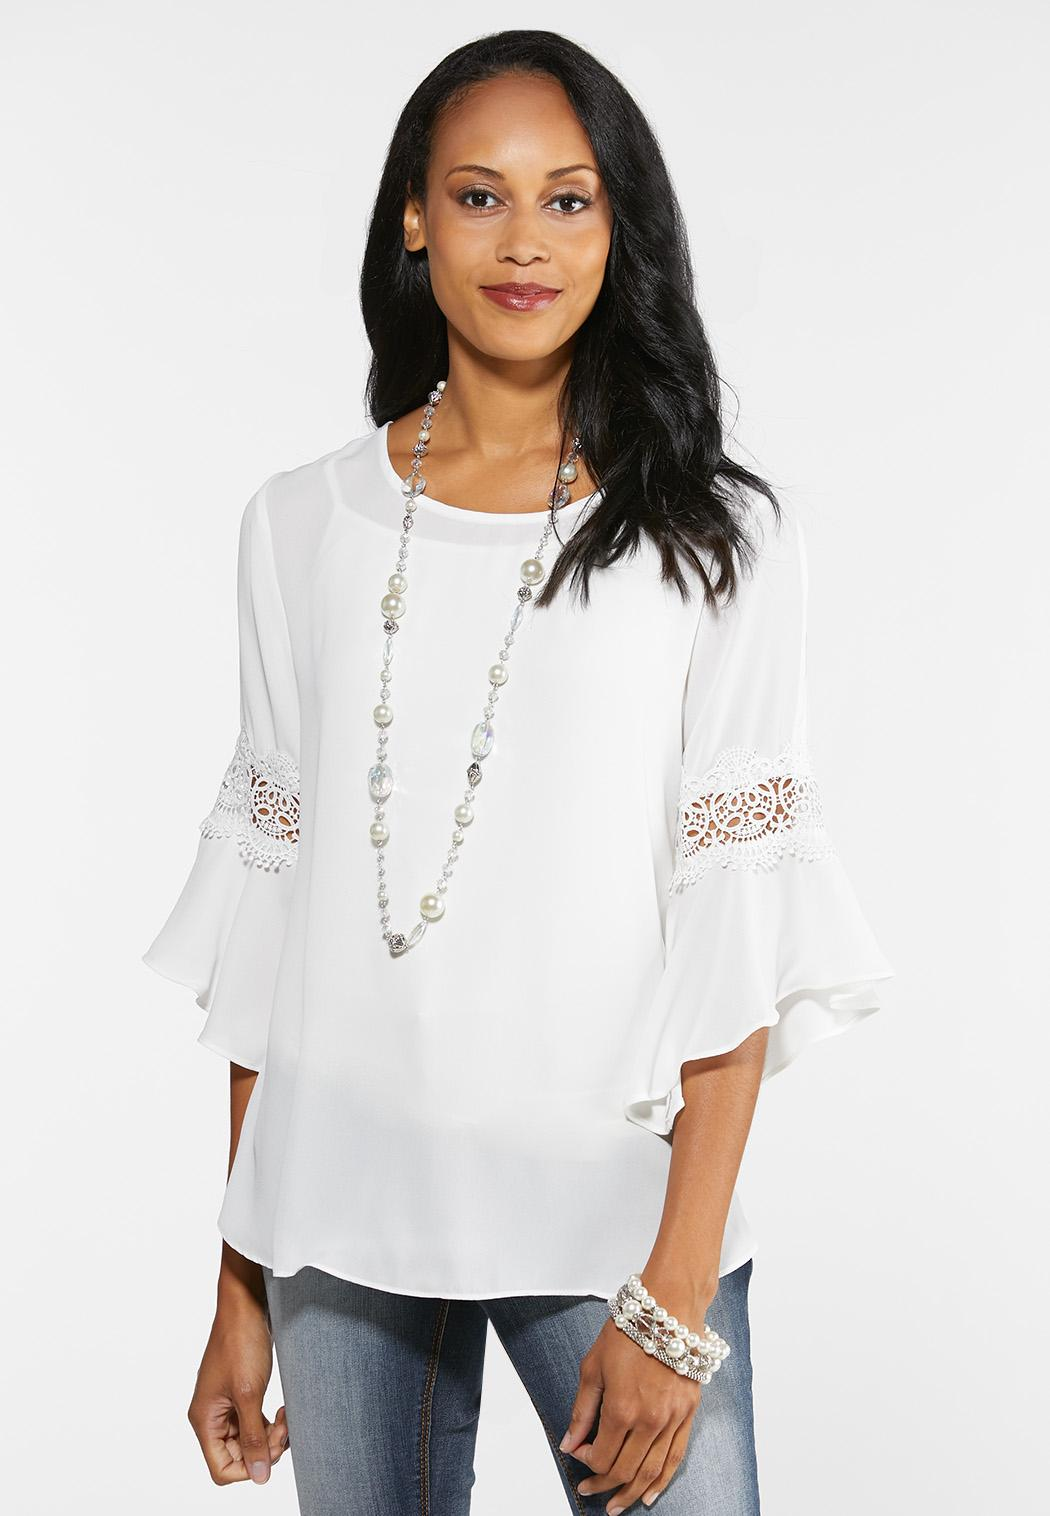 Plus Size White Lace Sleeve Top Shirts & Amp ; Blouses Cato Fashions